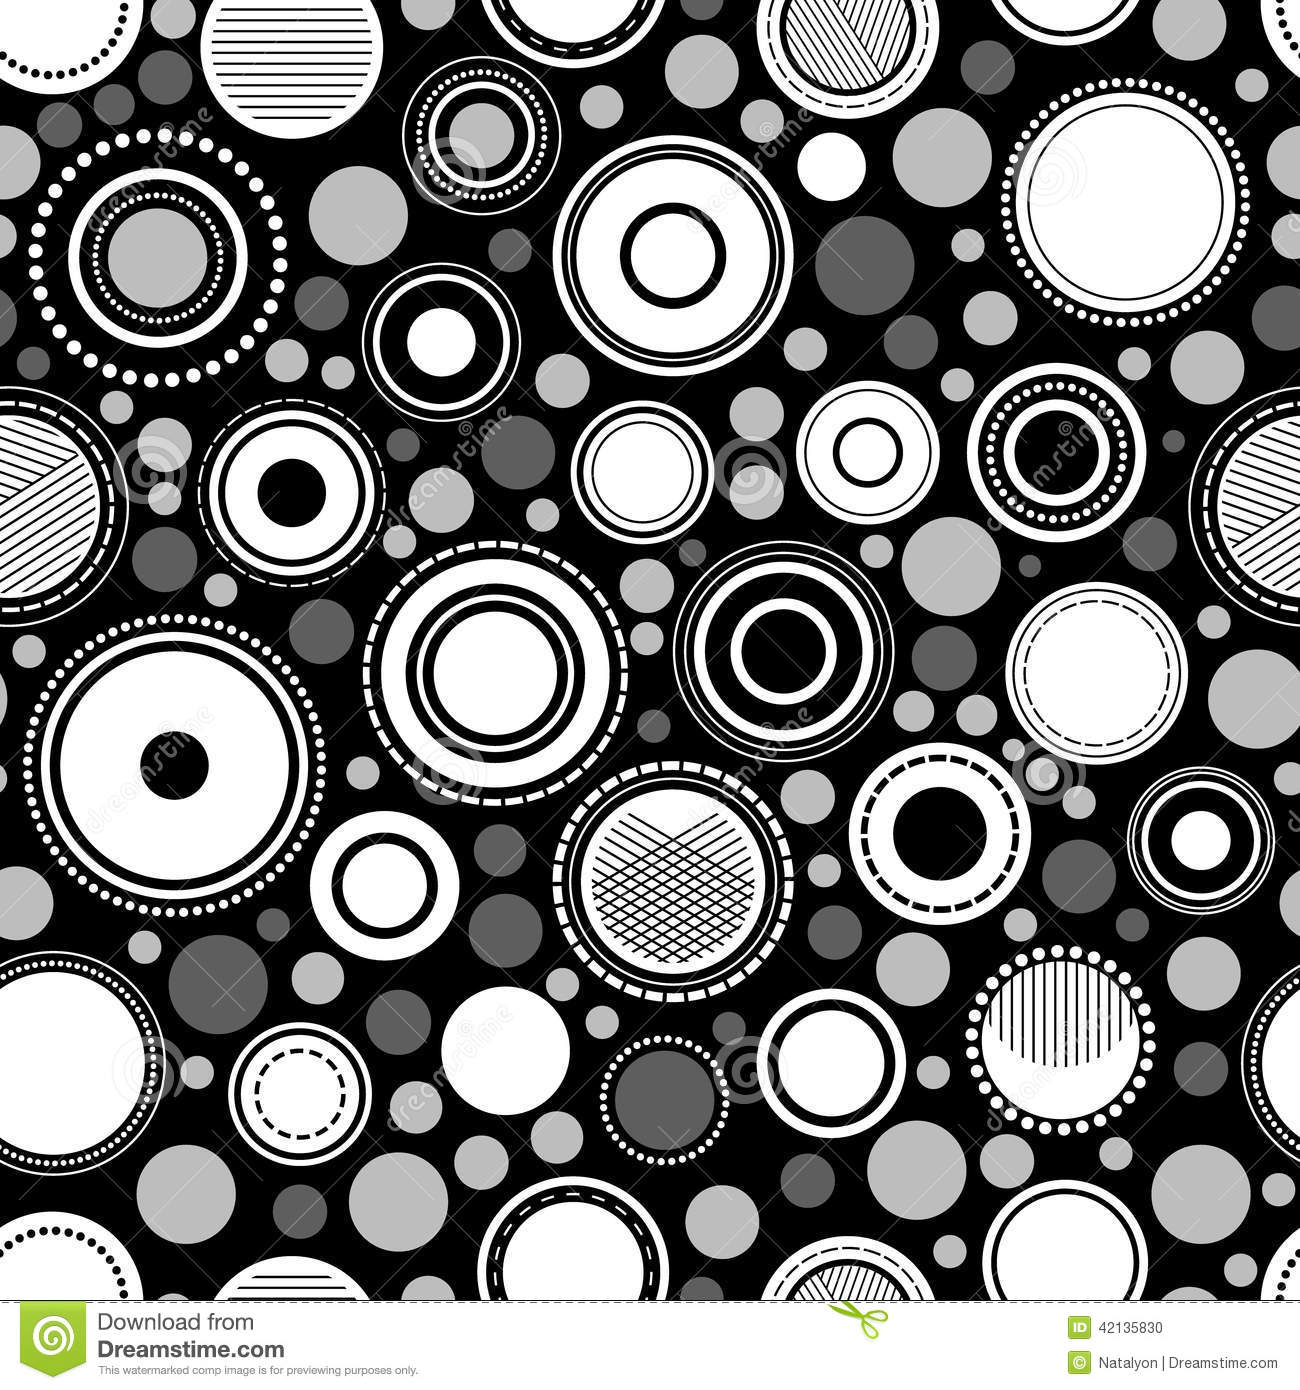 Black and white abstract geometric circles seamless pattern, vector